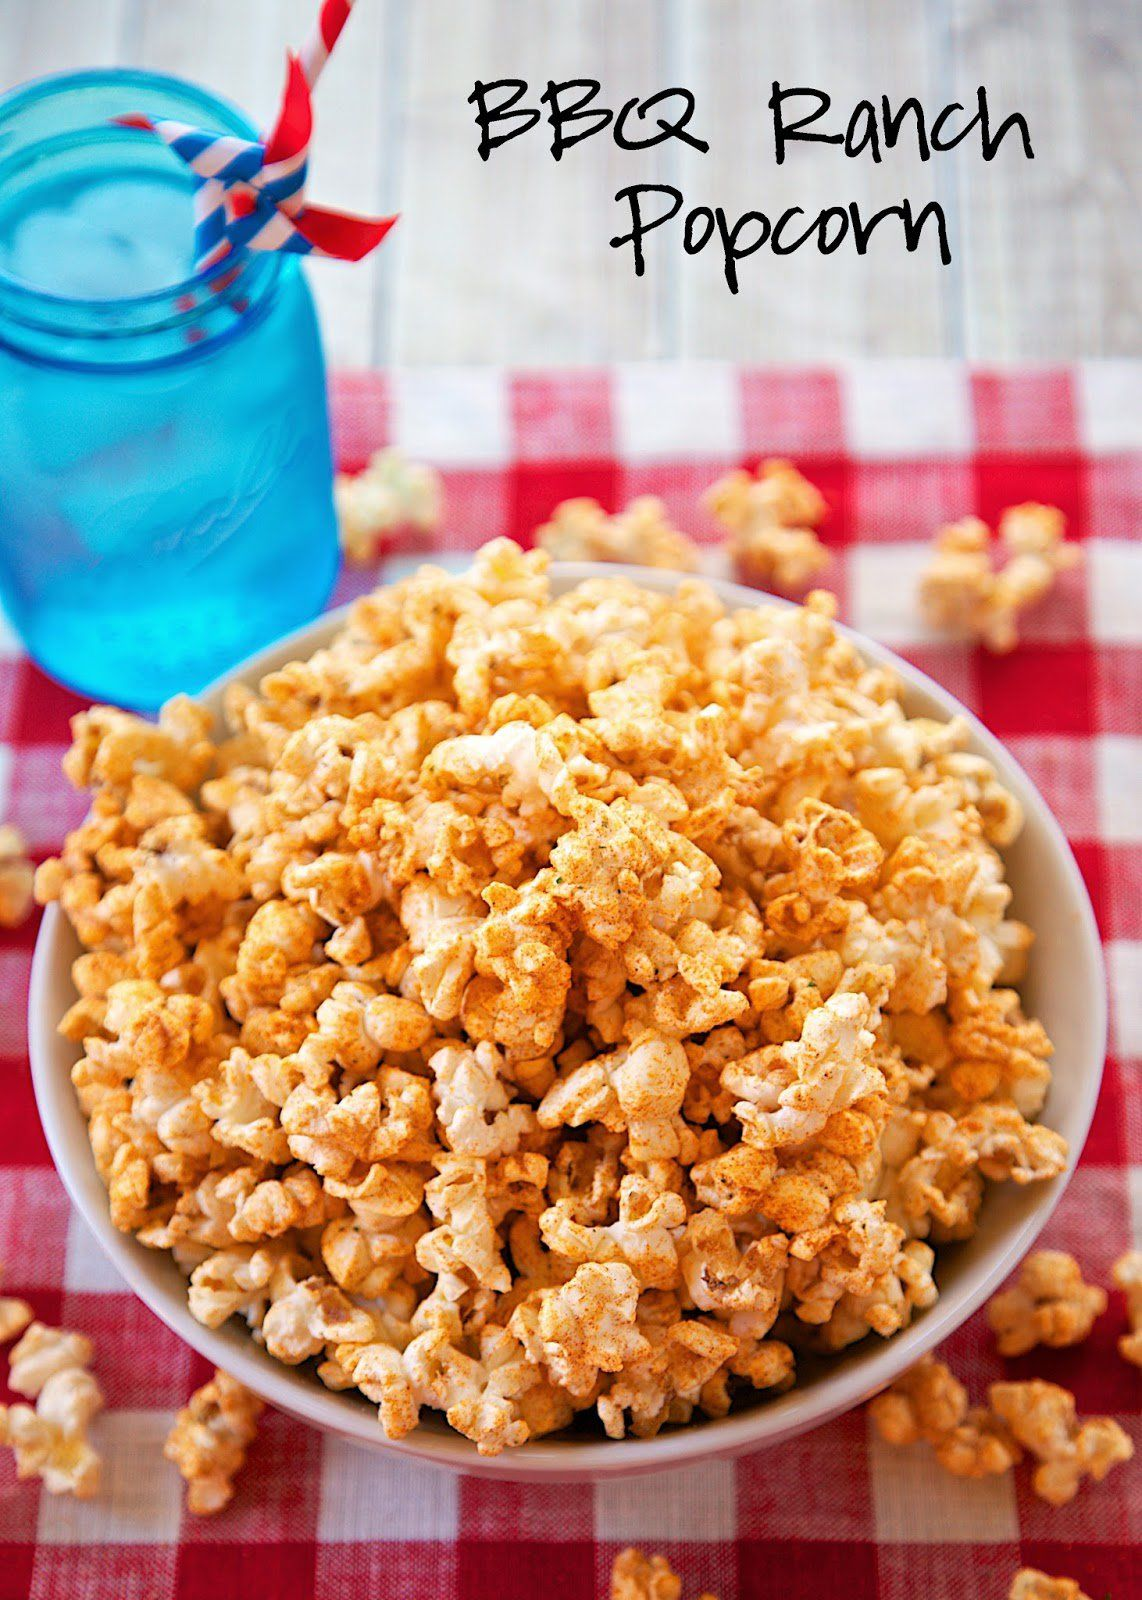 60+ Gourmet Popcorn Recipes to Spice up your Movie Night